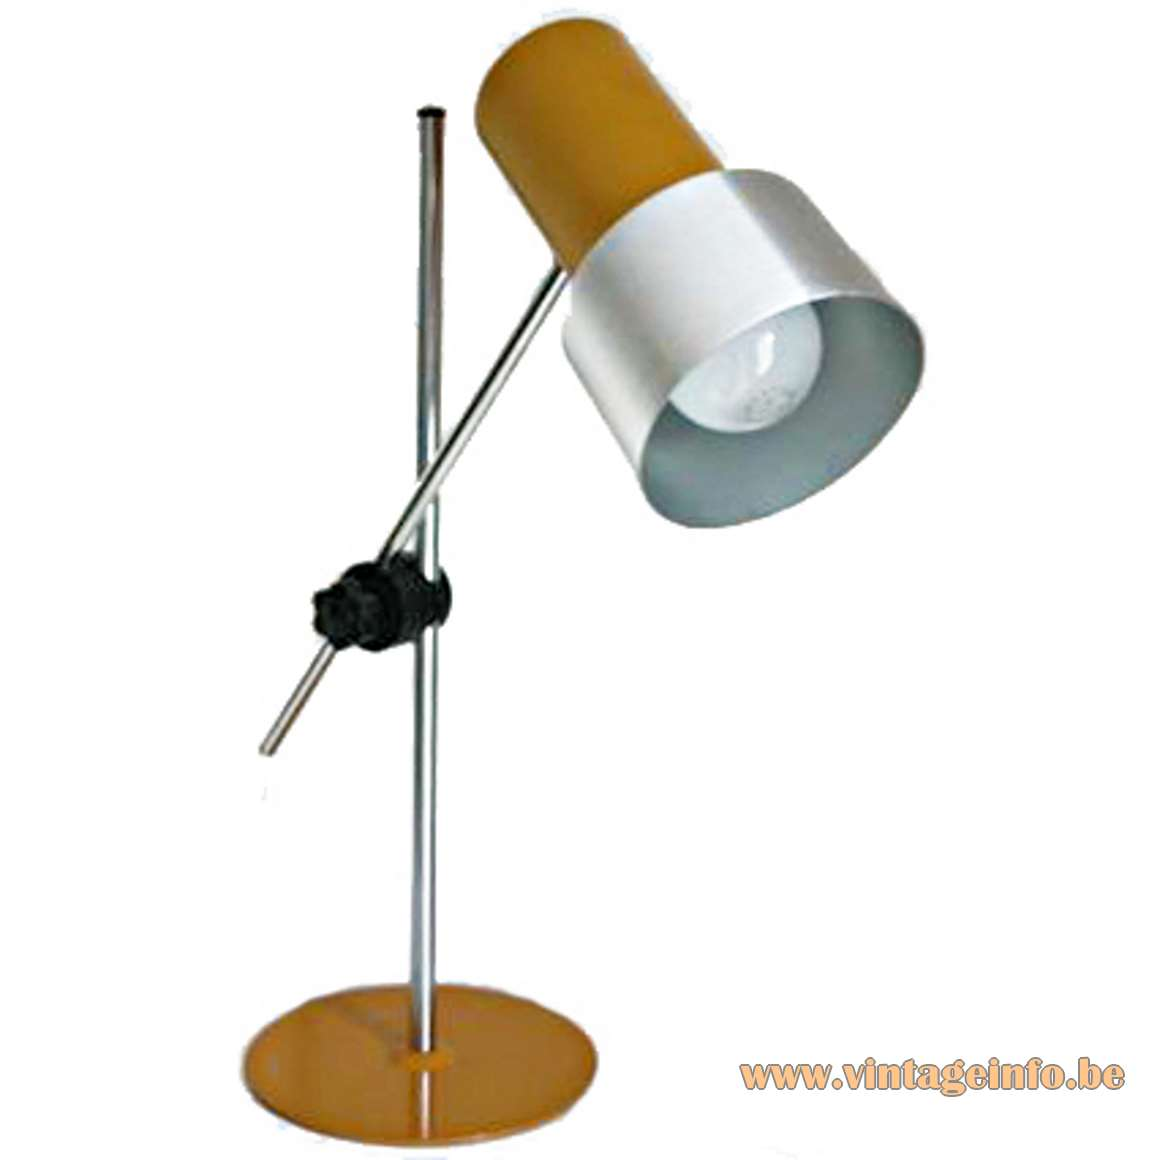 Vanilla Eyeball Desk Lamp - Prova Desk Lamp for BHS